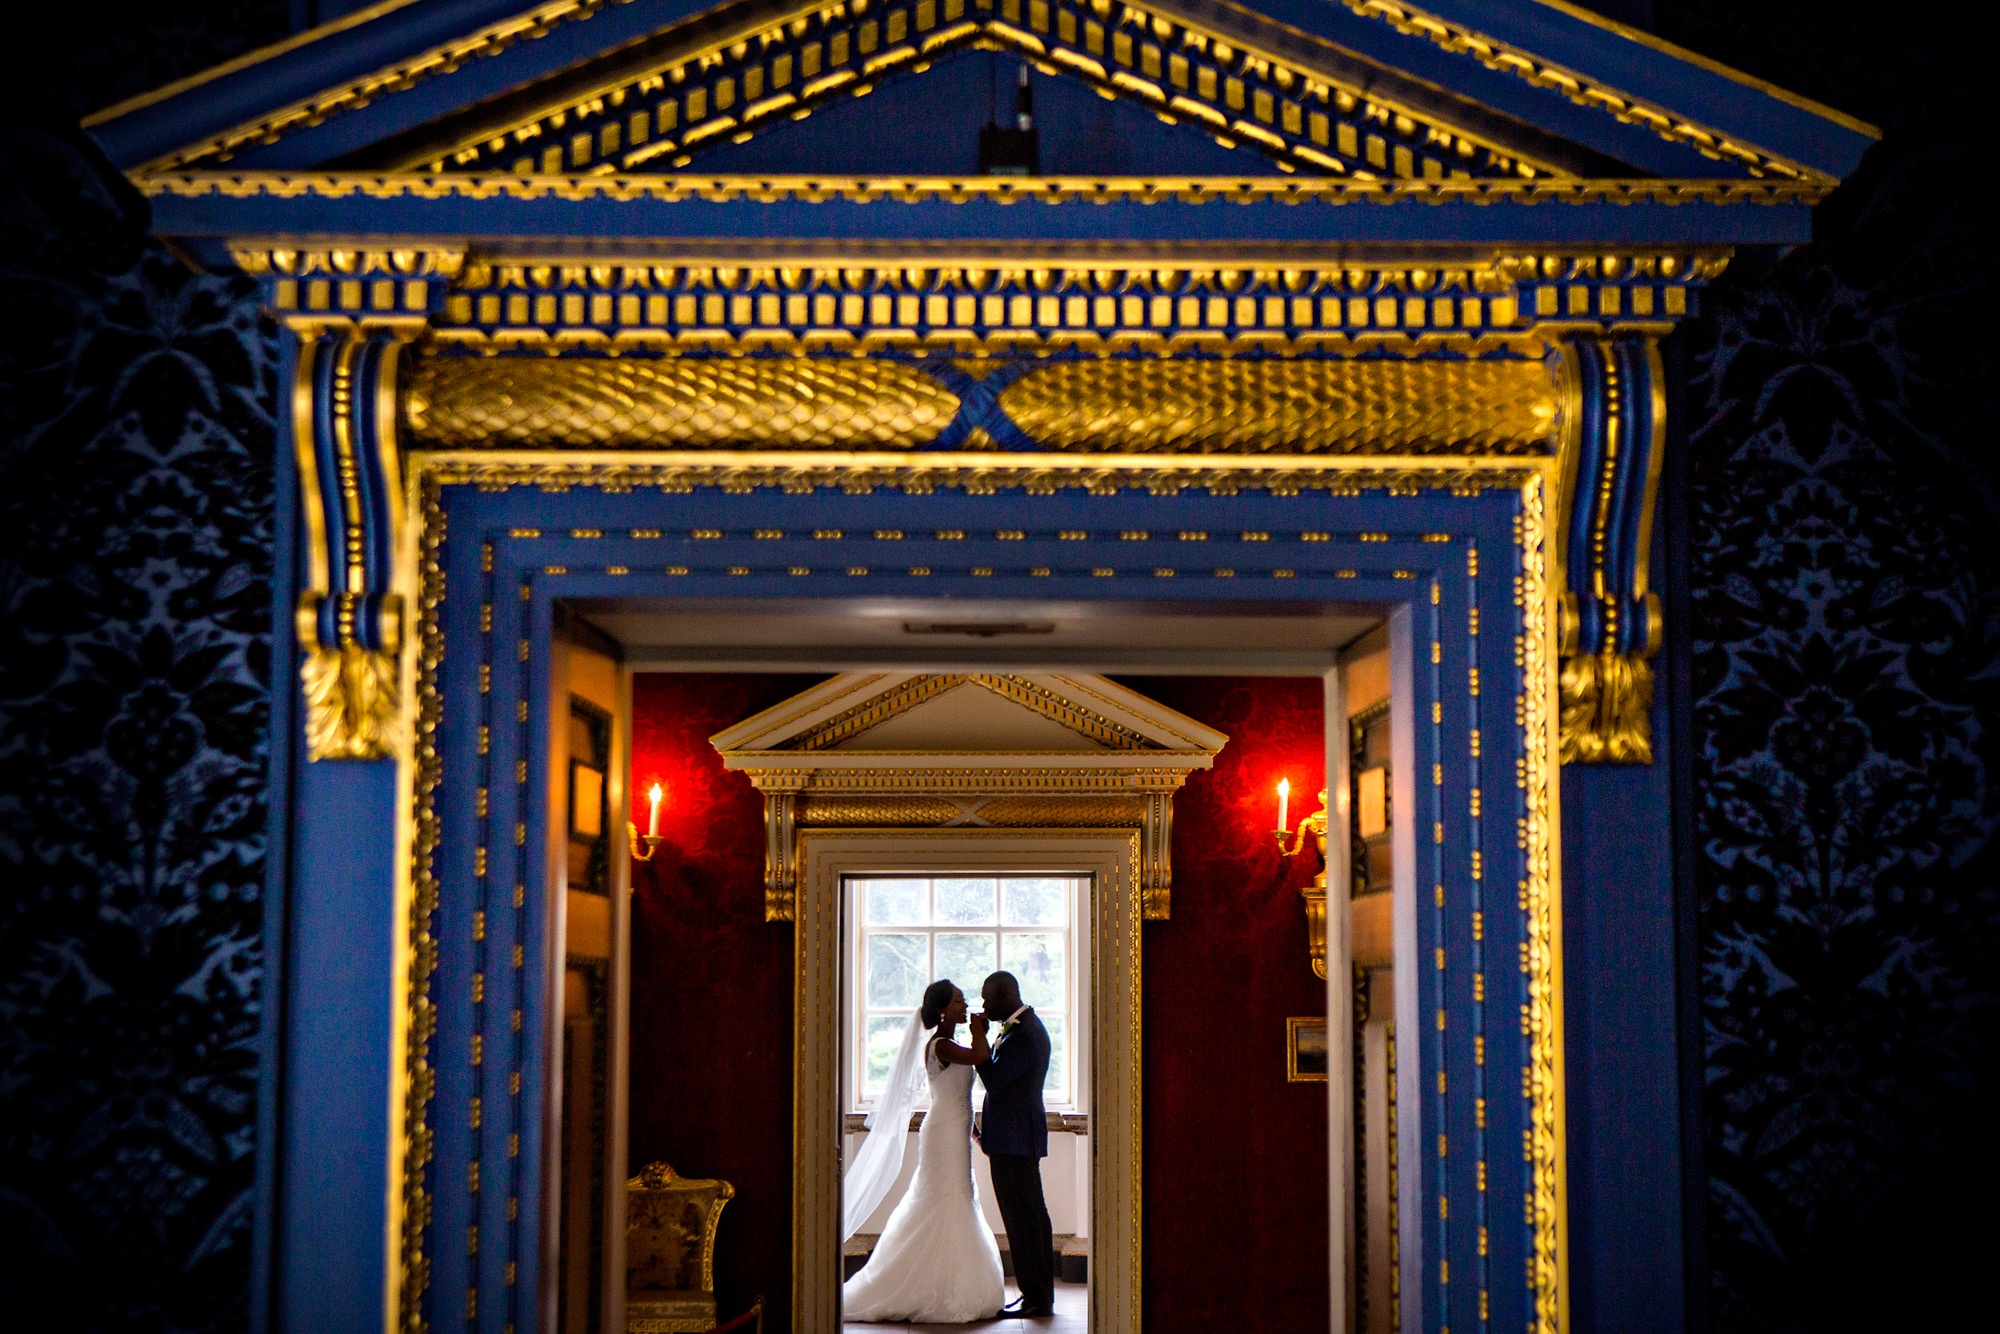 Couple under ornate gold doorway - photo by Jide Alakija